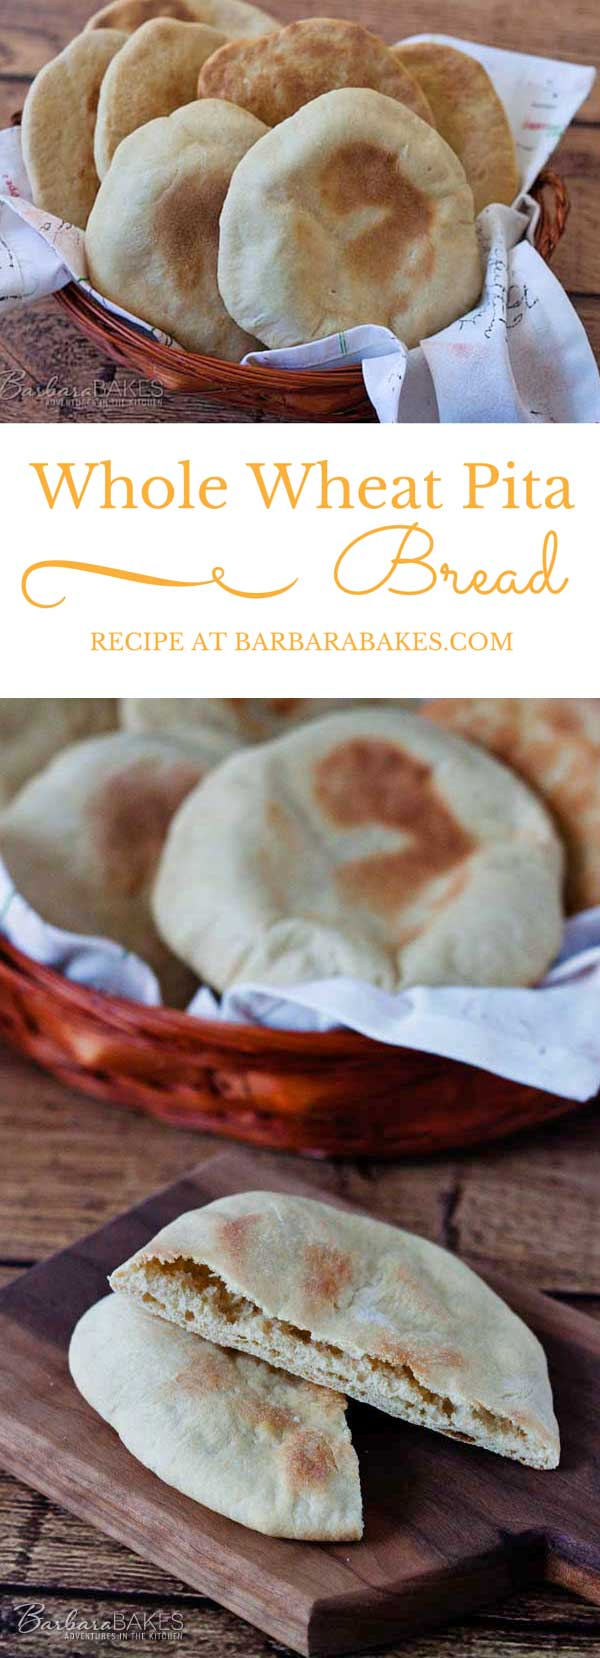 Pita bread is a soft easy-to-make flat bread made from a yeast bread dough, rolled thin, then baked at a high temperature so it puffs up as it bakes.